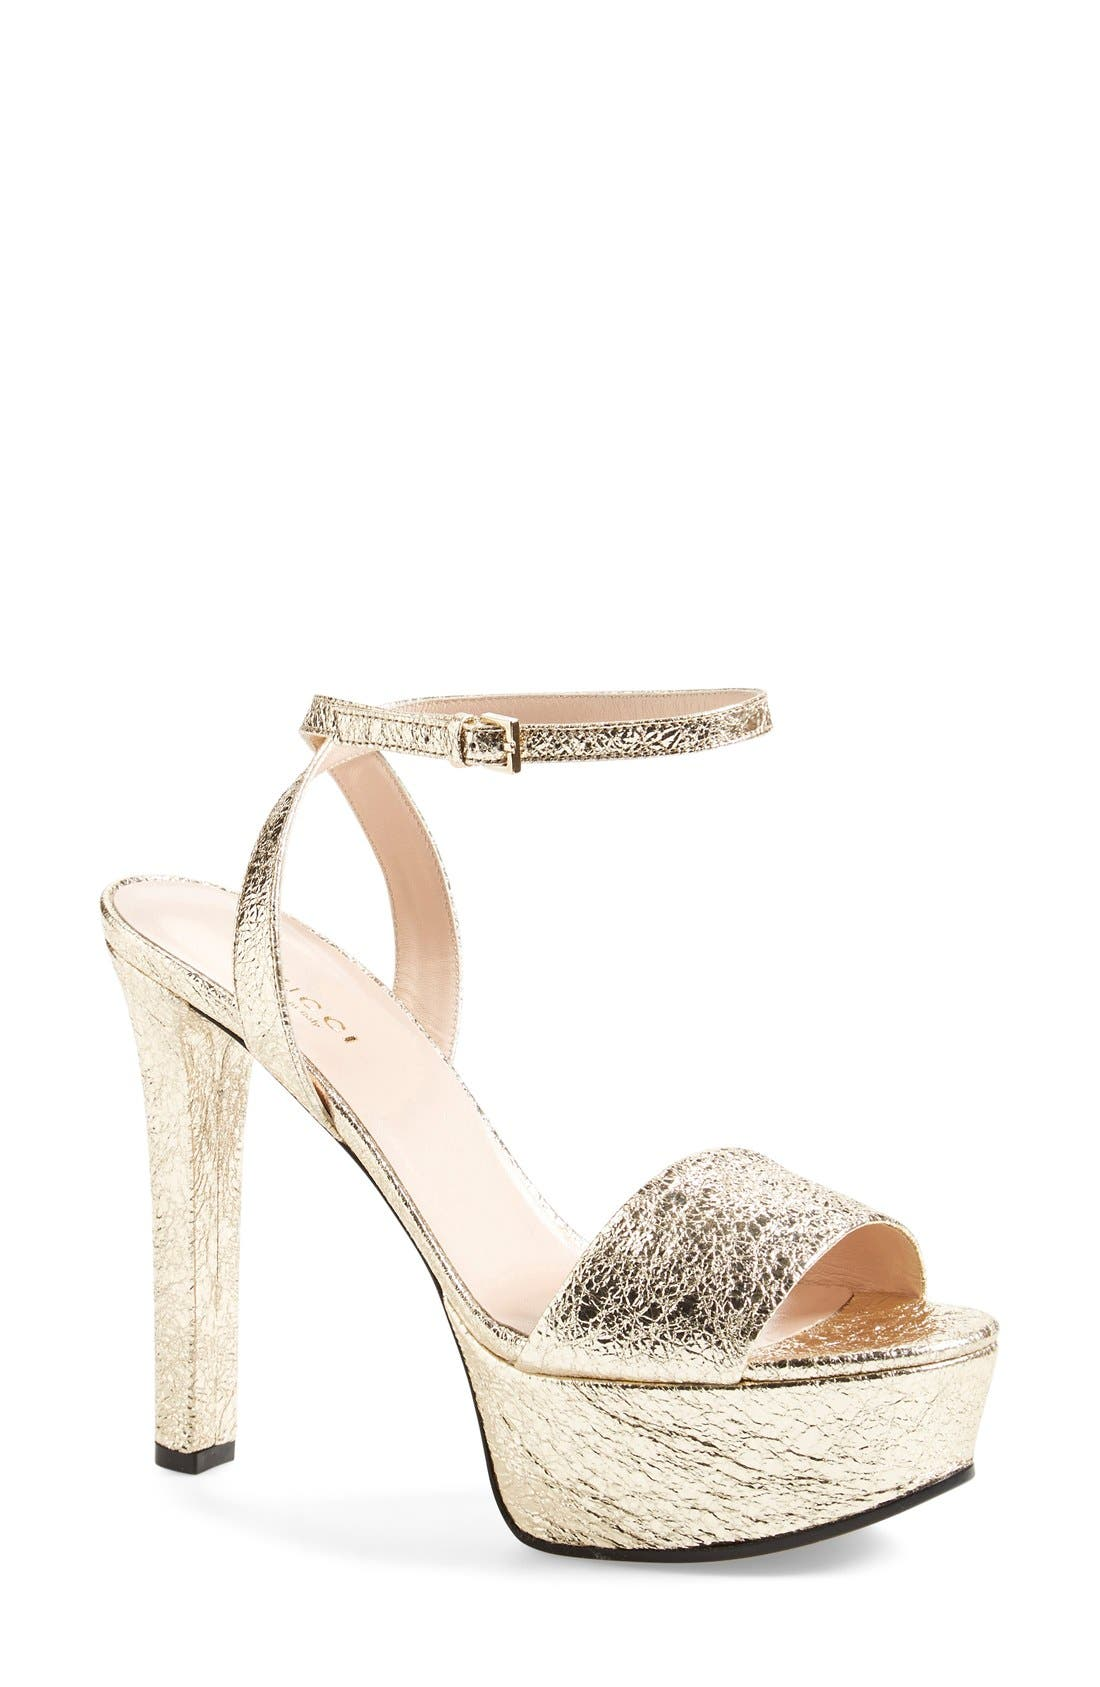 Alternate Image 1 Selected - Gucci 'Leila' Ankle Strap Platform Sandal (Women)